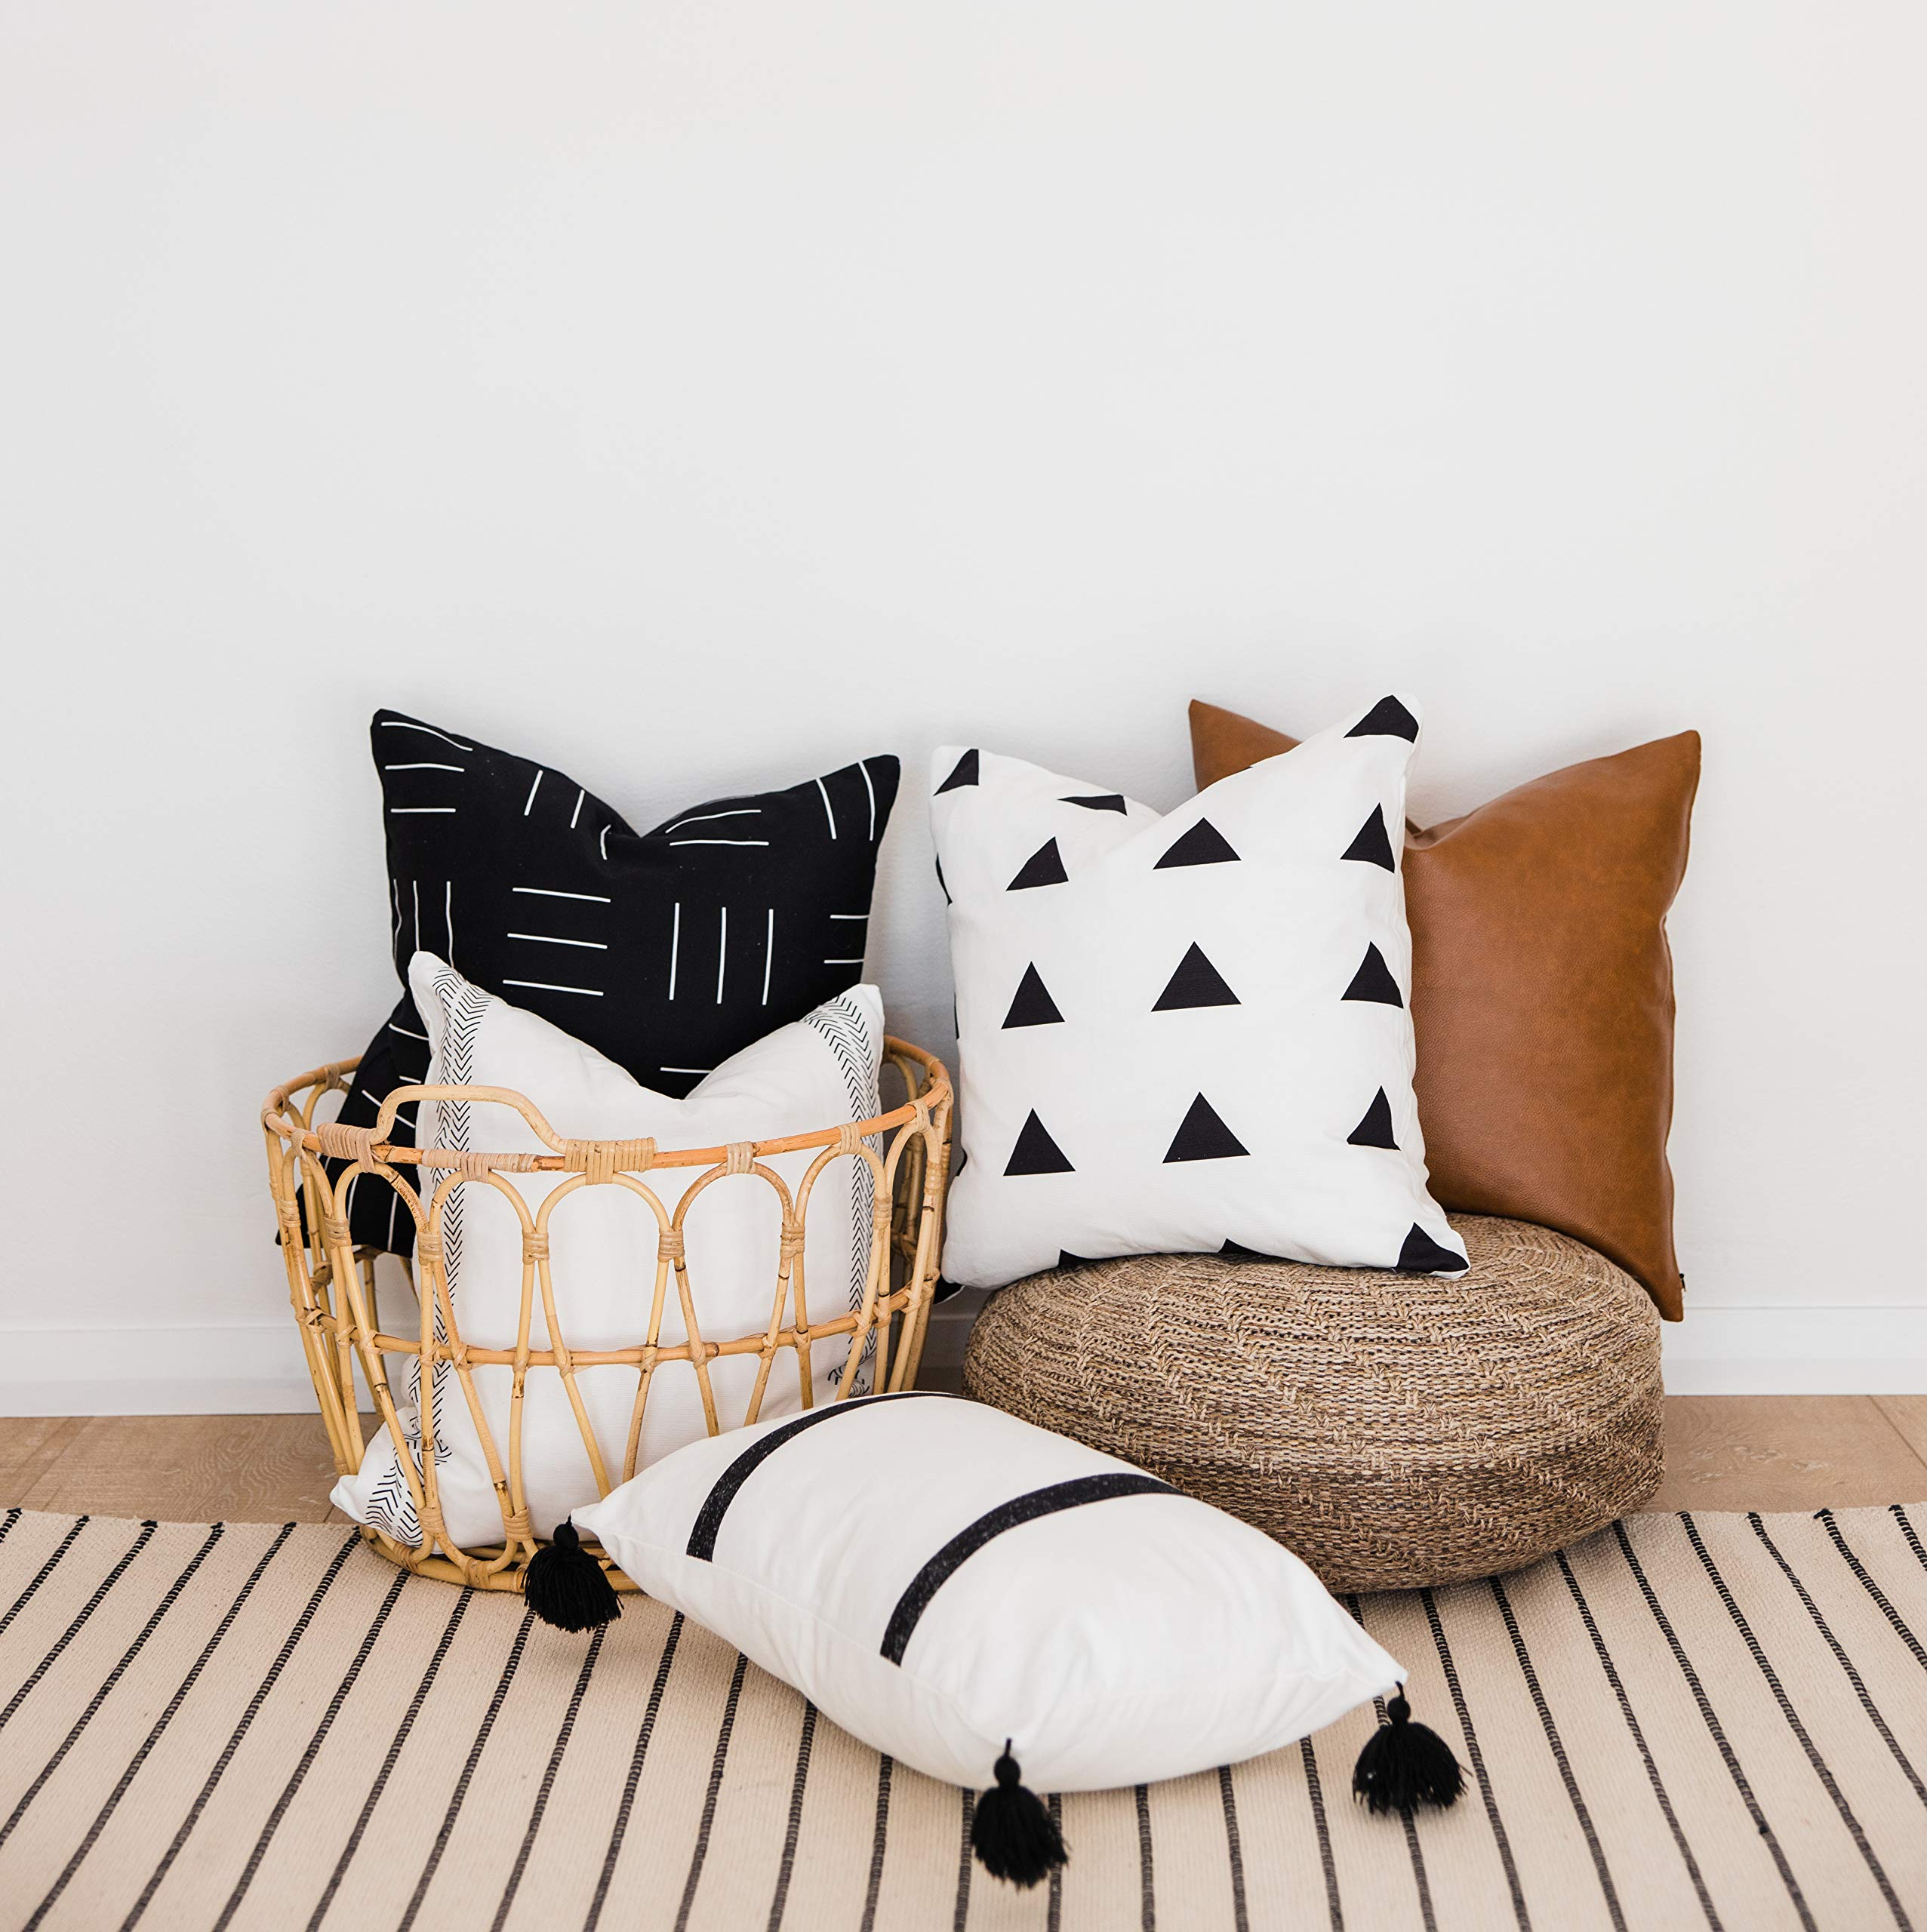 One Queens Lane Decorative Throw Pillow Covers ONLY for Couch, Sofa, or Bed, Boho, Geometric, Modern Design, 100% Cotton and Vegan Faux Leather Set of 5, 18 x 18 inch, Brooklyn Set